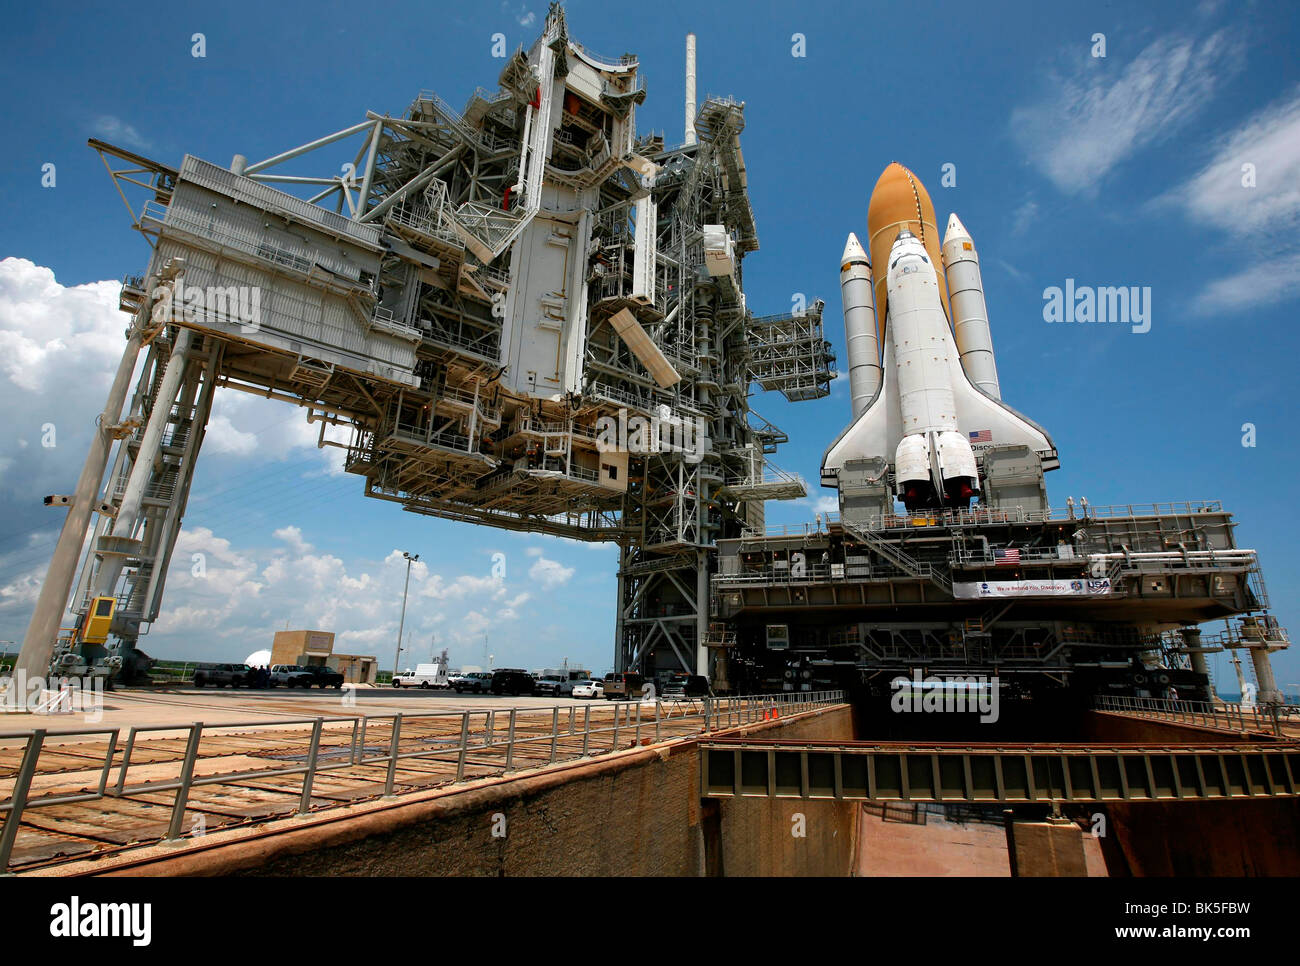 Space shuttle Discovery prepares for liftoff, NASA, Kennedy Space Center, Florida, USA - Stock Image